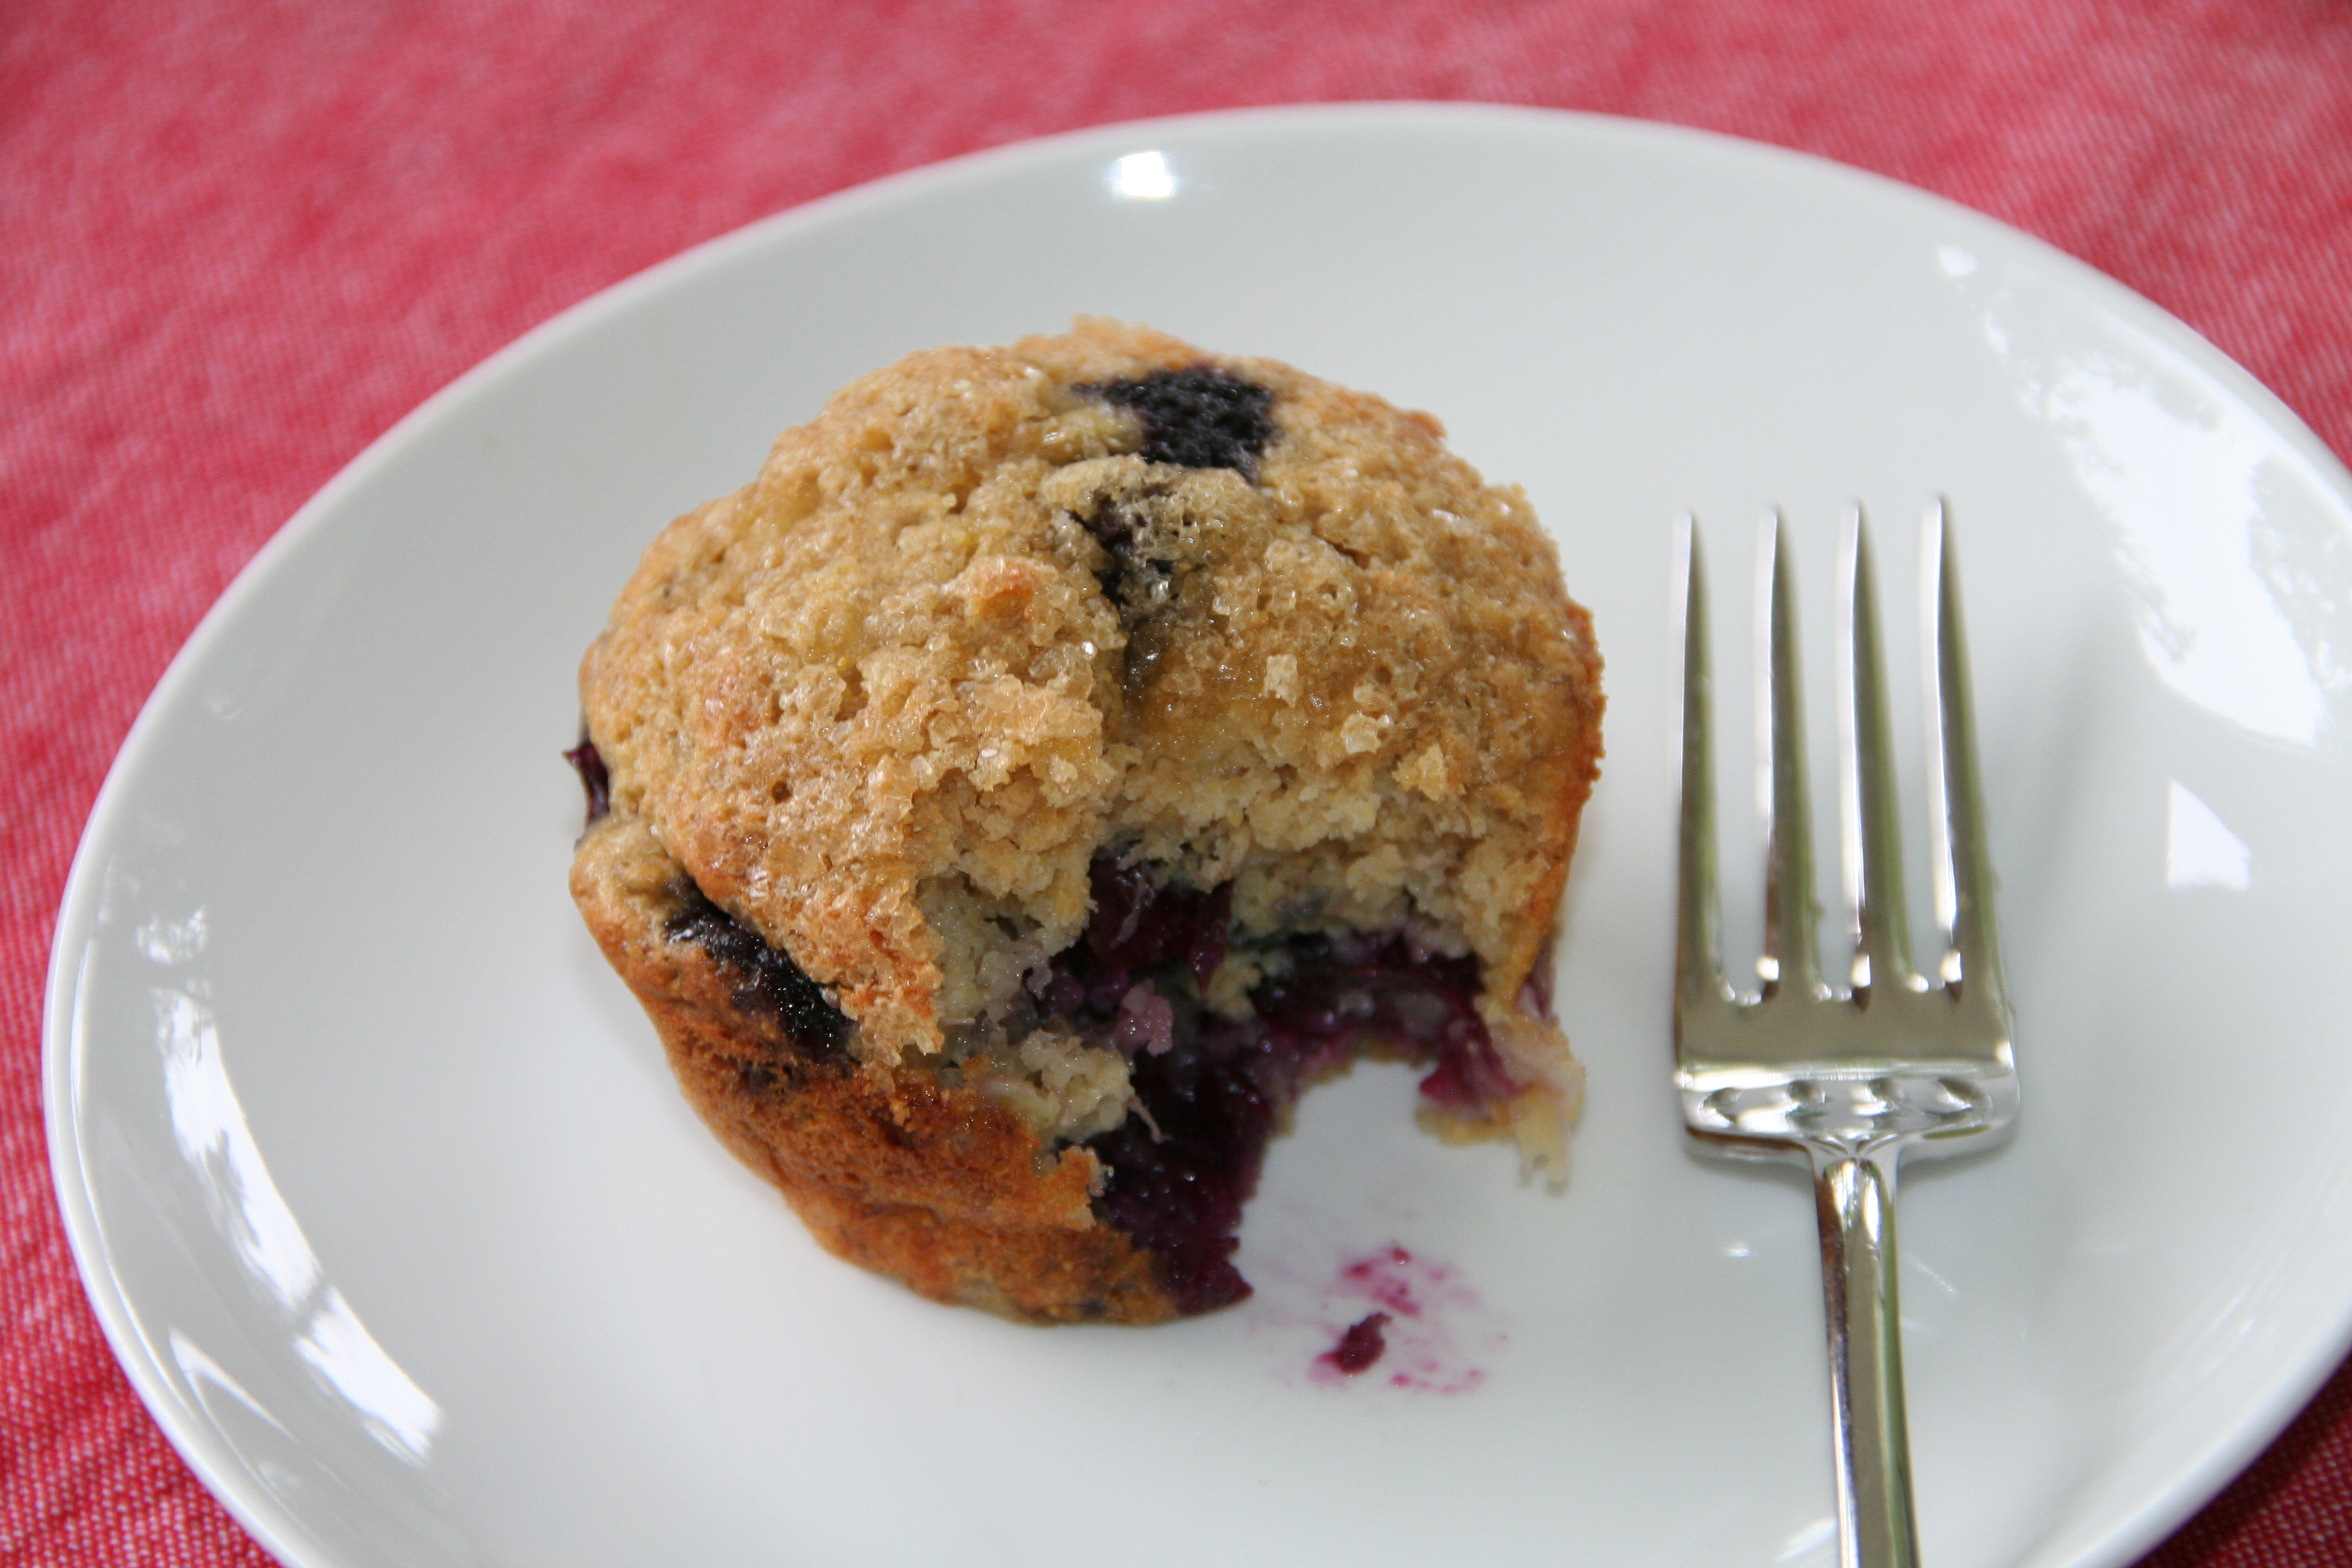 make these muffins all of the time. They are healthy, moist, and